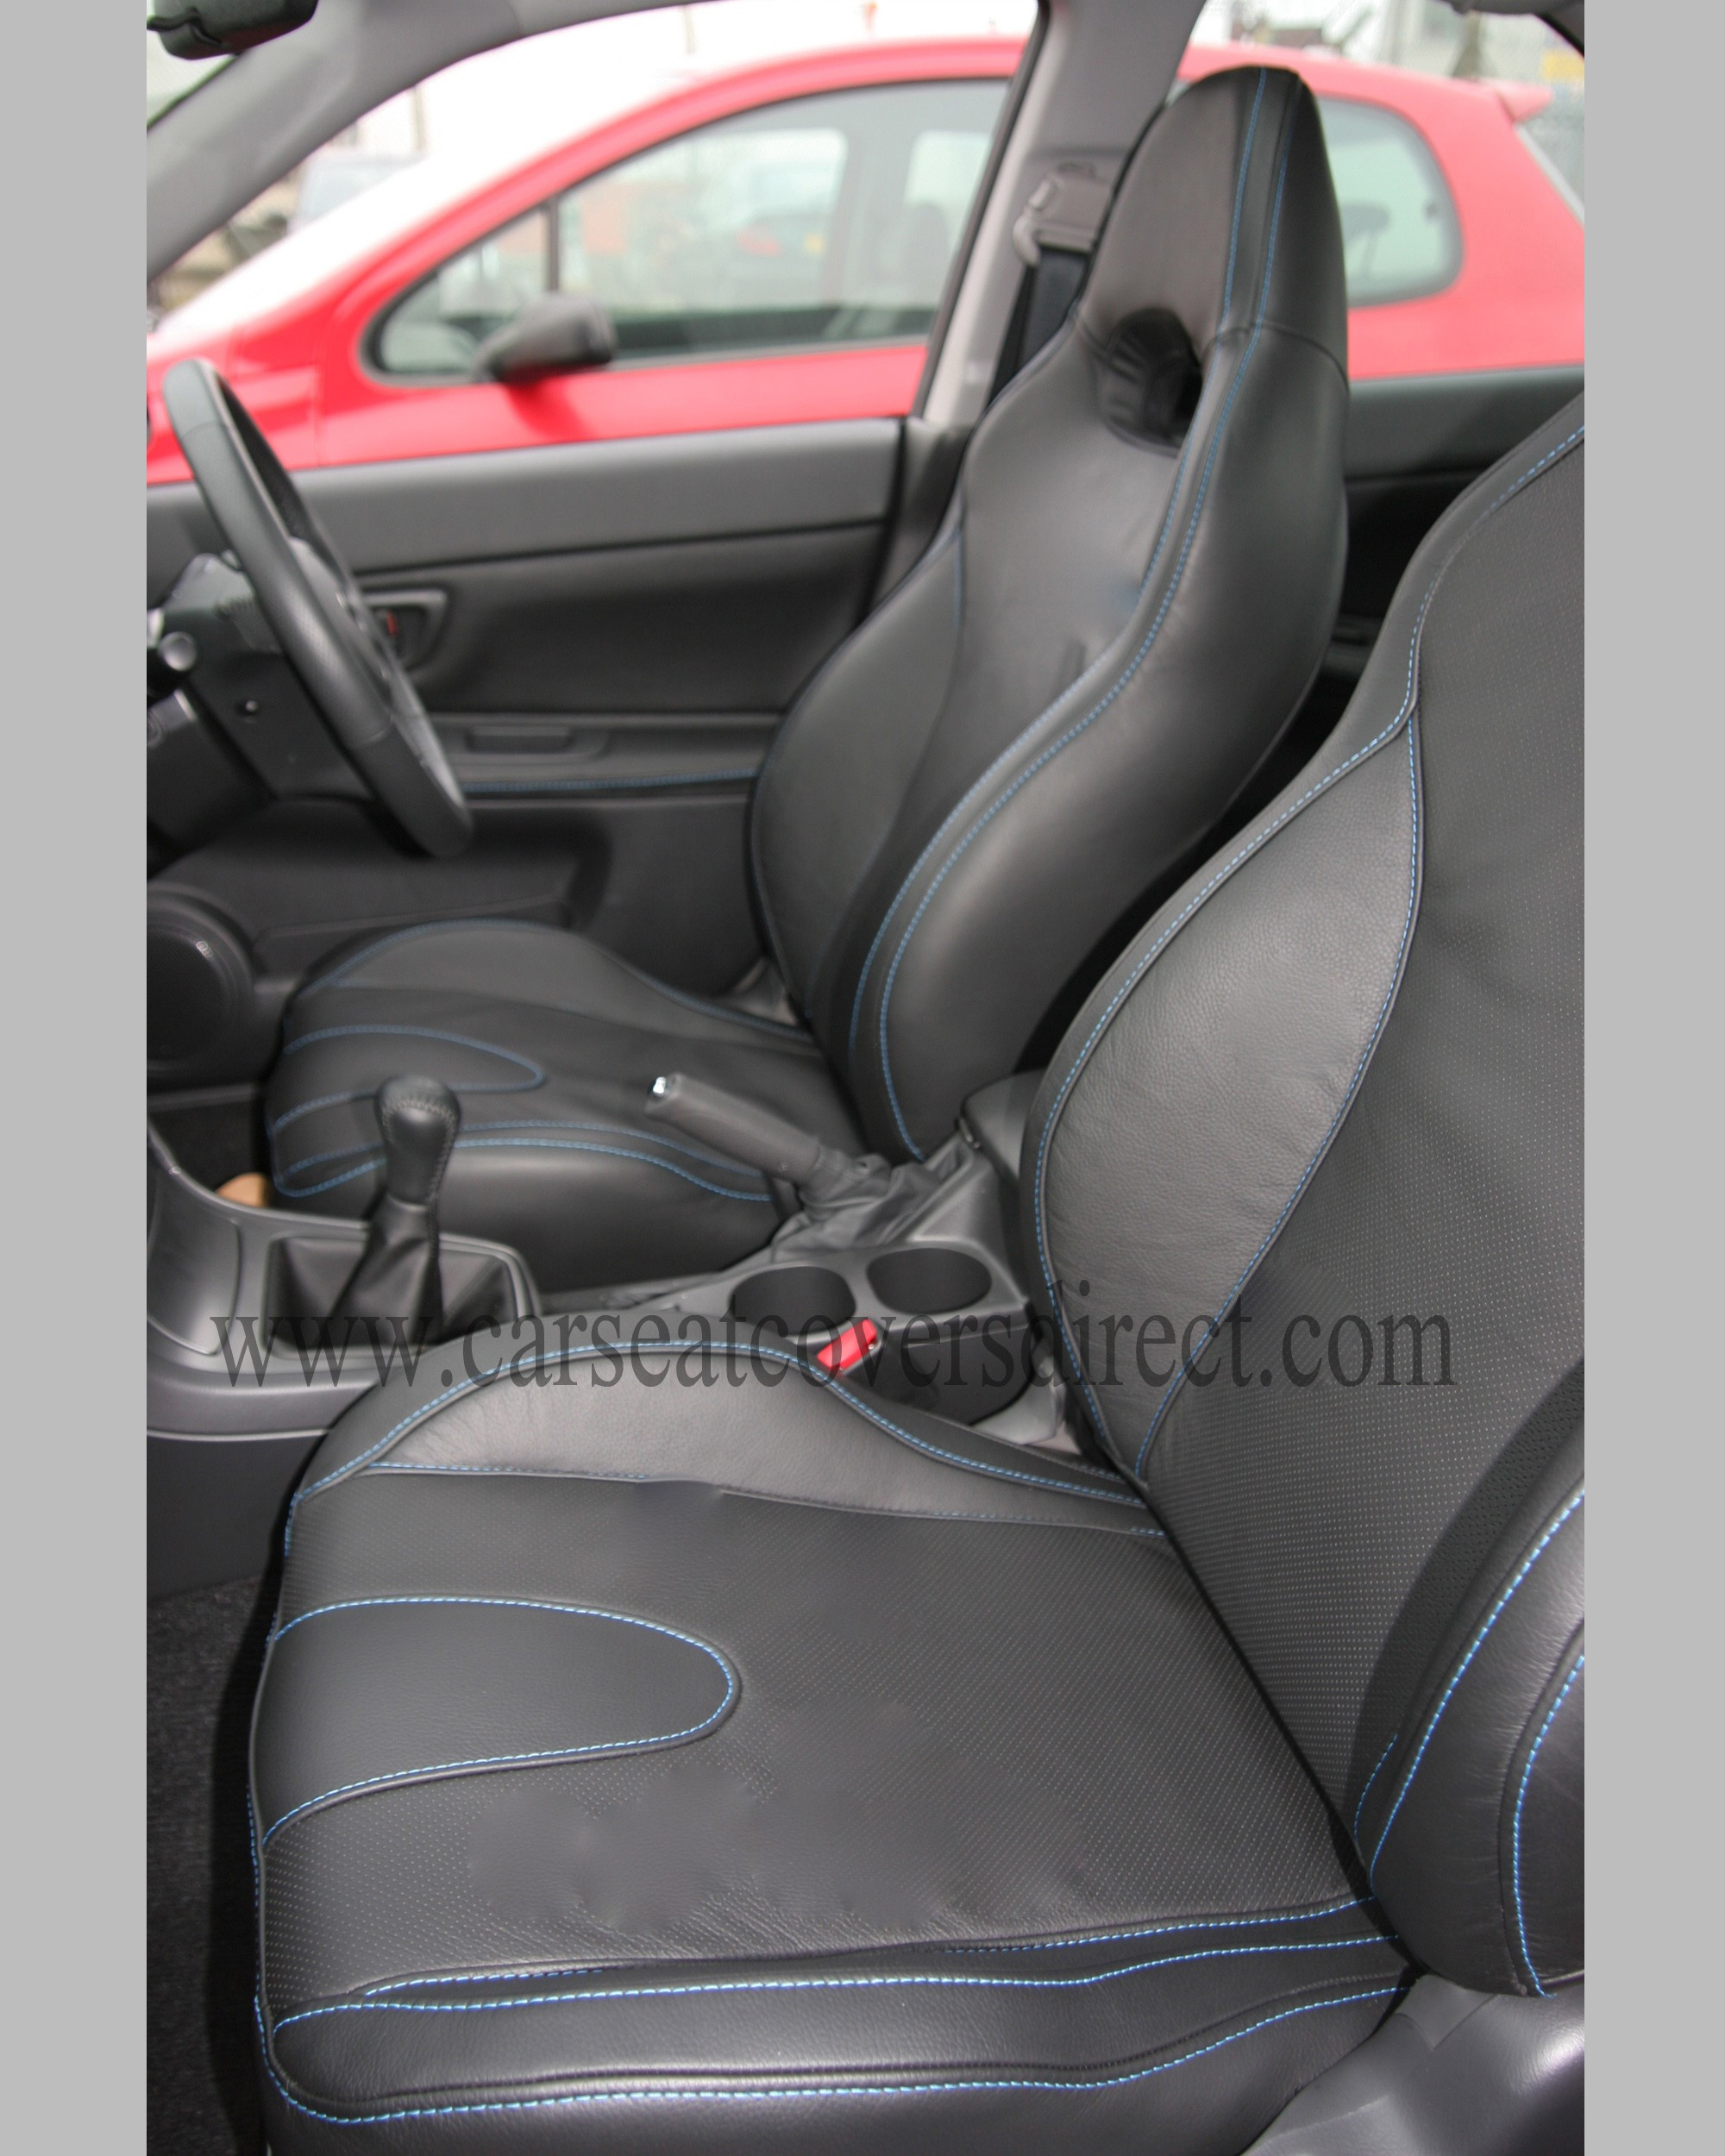 subaru impreza leather retrim car seat covers direct tailored to your choice. Black Bedroom Furniture Sets. Home Design Ideas